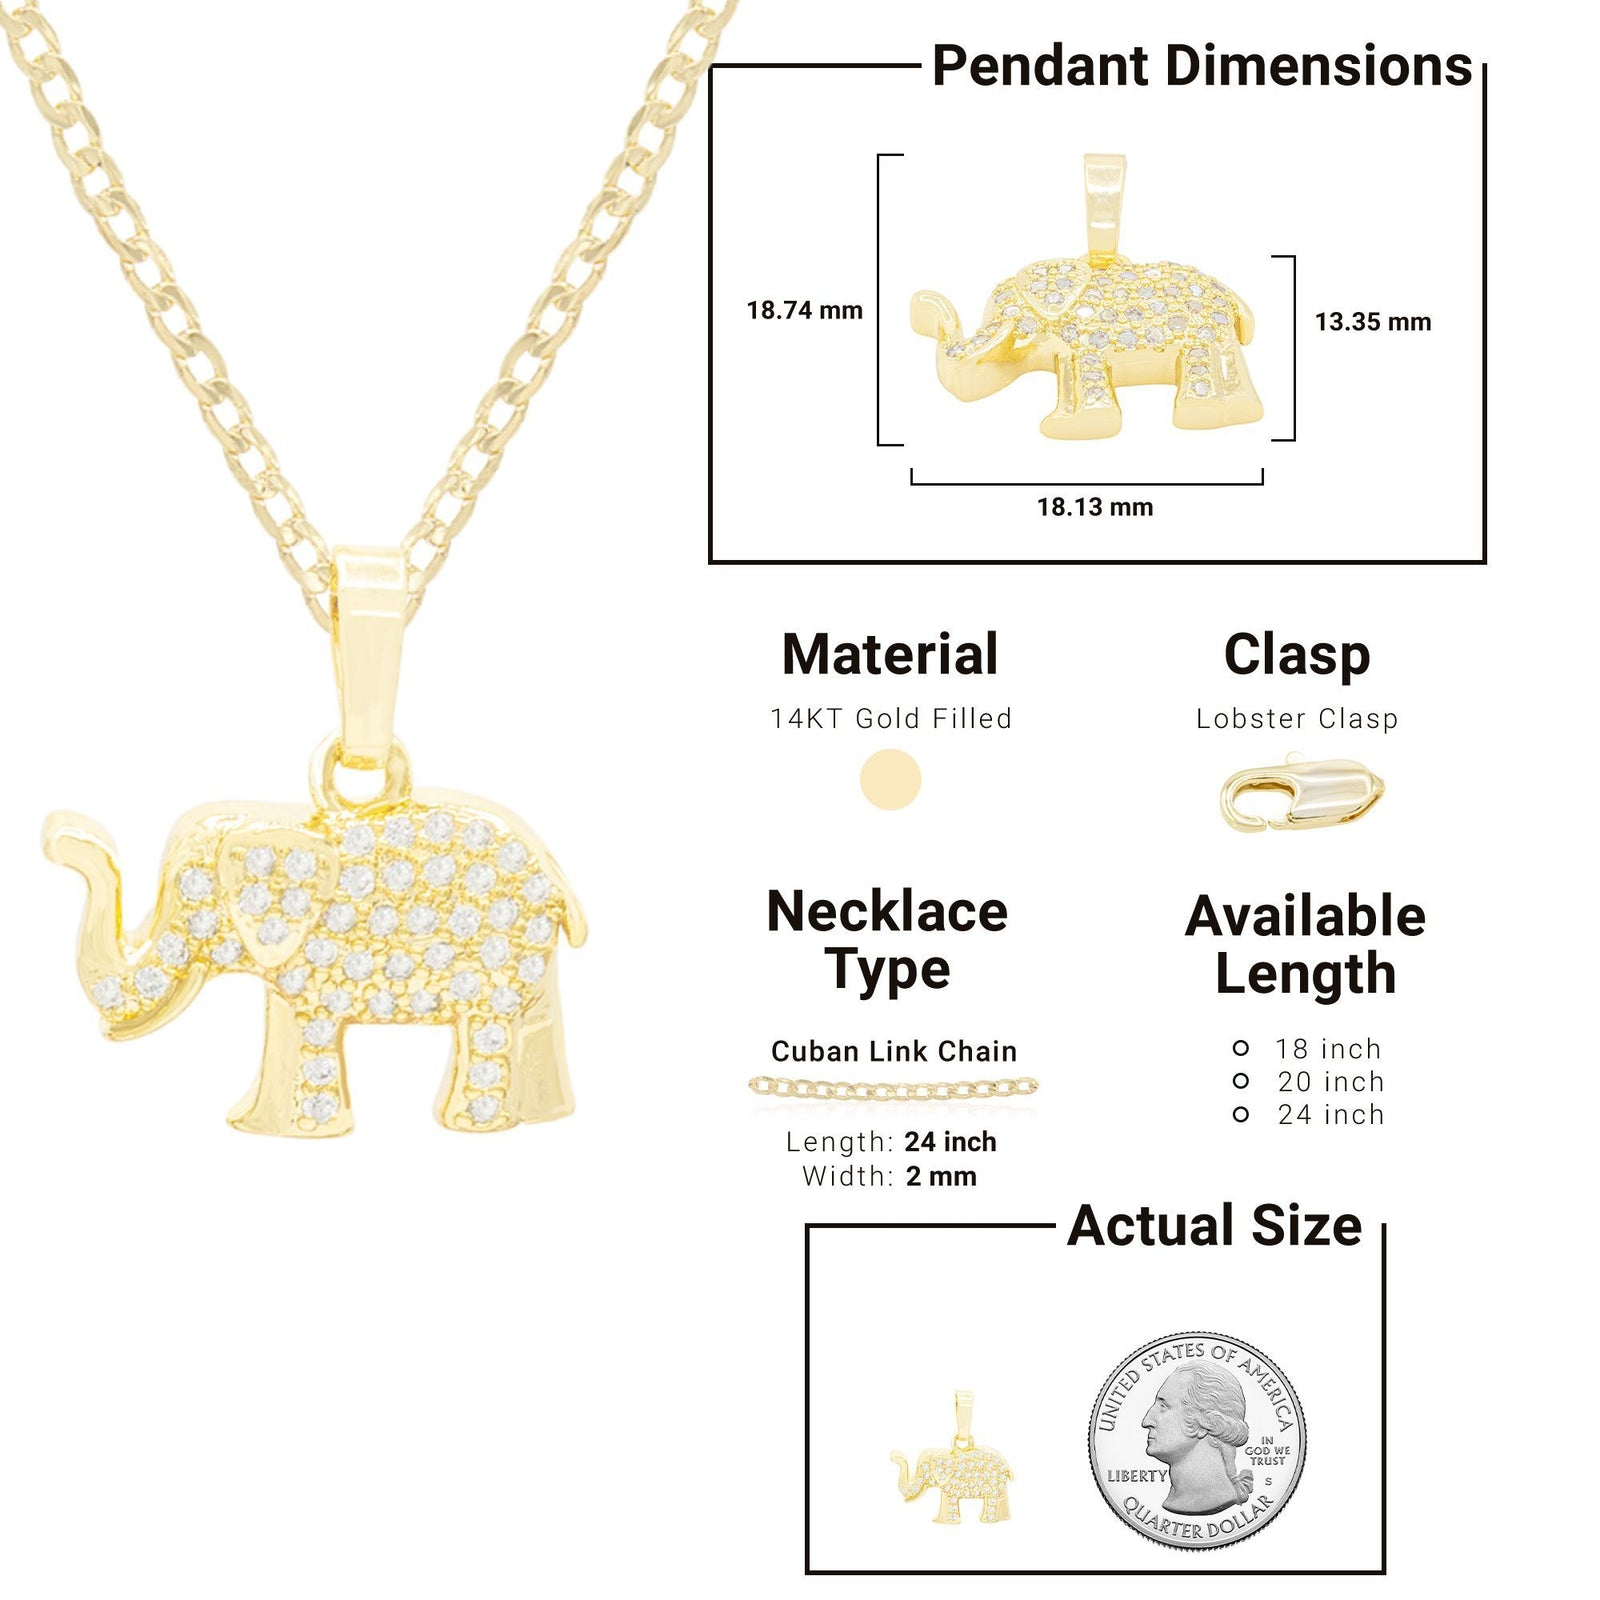 Elephant Necklace and Earring Set of 14K Gold Filled with Cubic Zirconia Gemstones